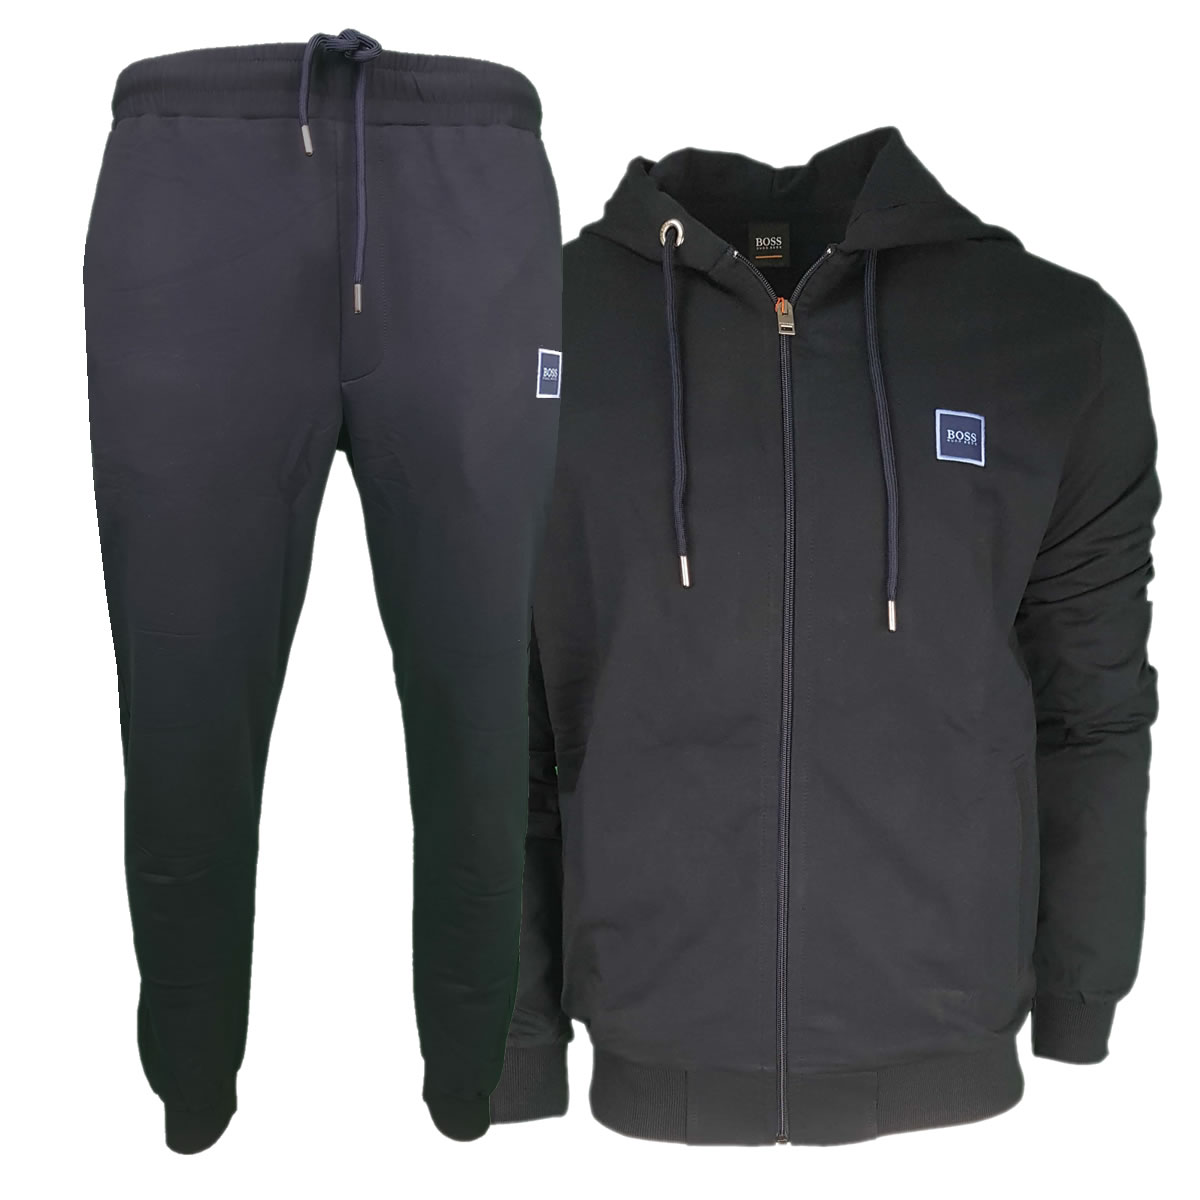 e7ae01be8 Hugo Boss Pavlik Tracksuit Top Jacket & Bottoms with Contrast Logo in Navy  Blue